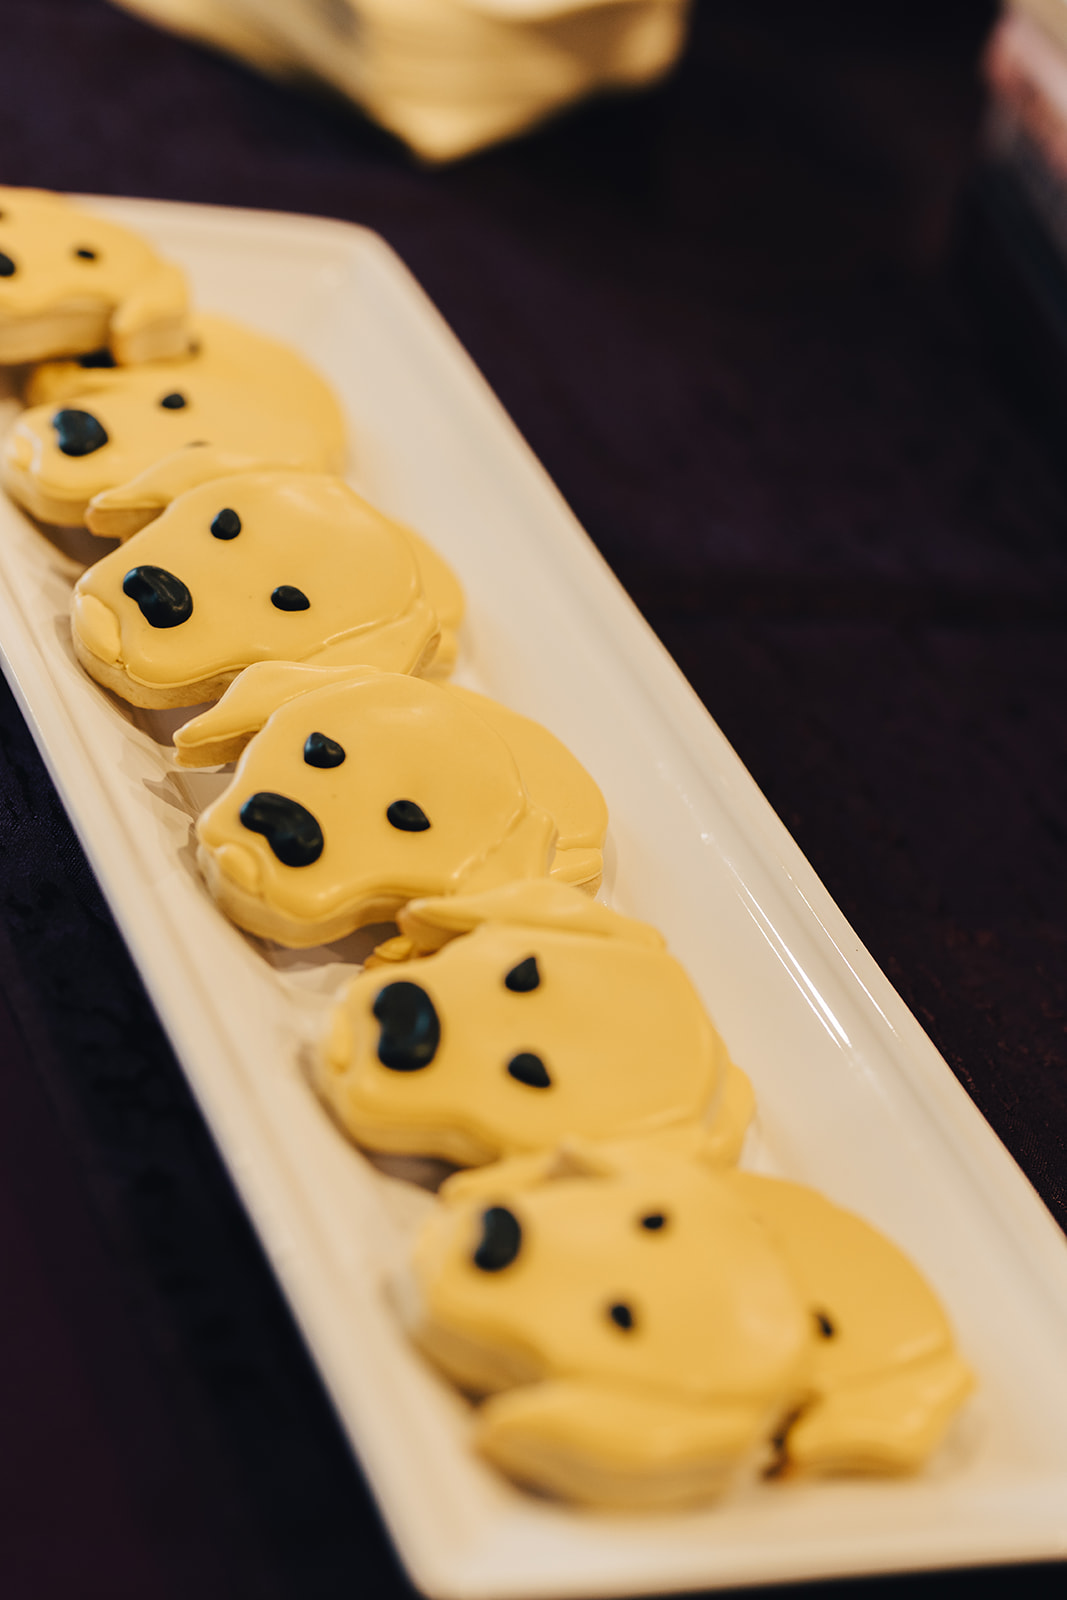 Dog face shaped cookies for West Bay Beach wedding